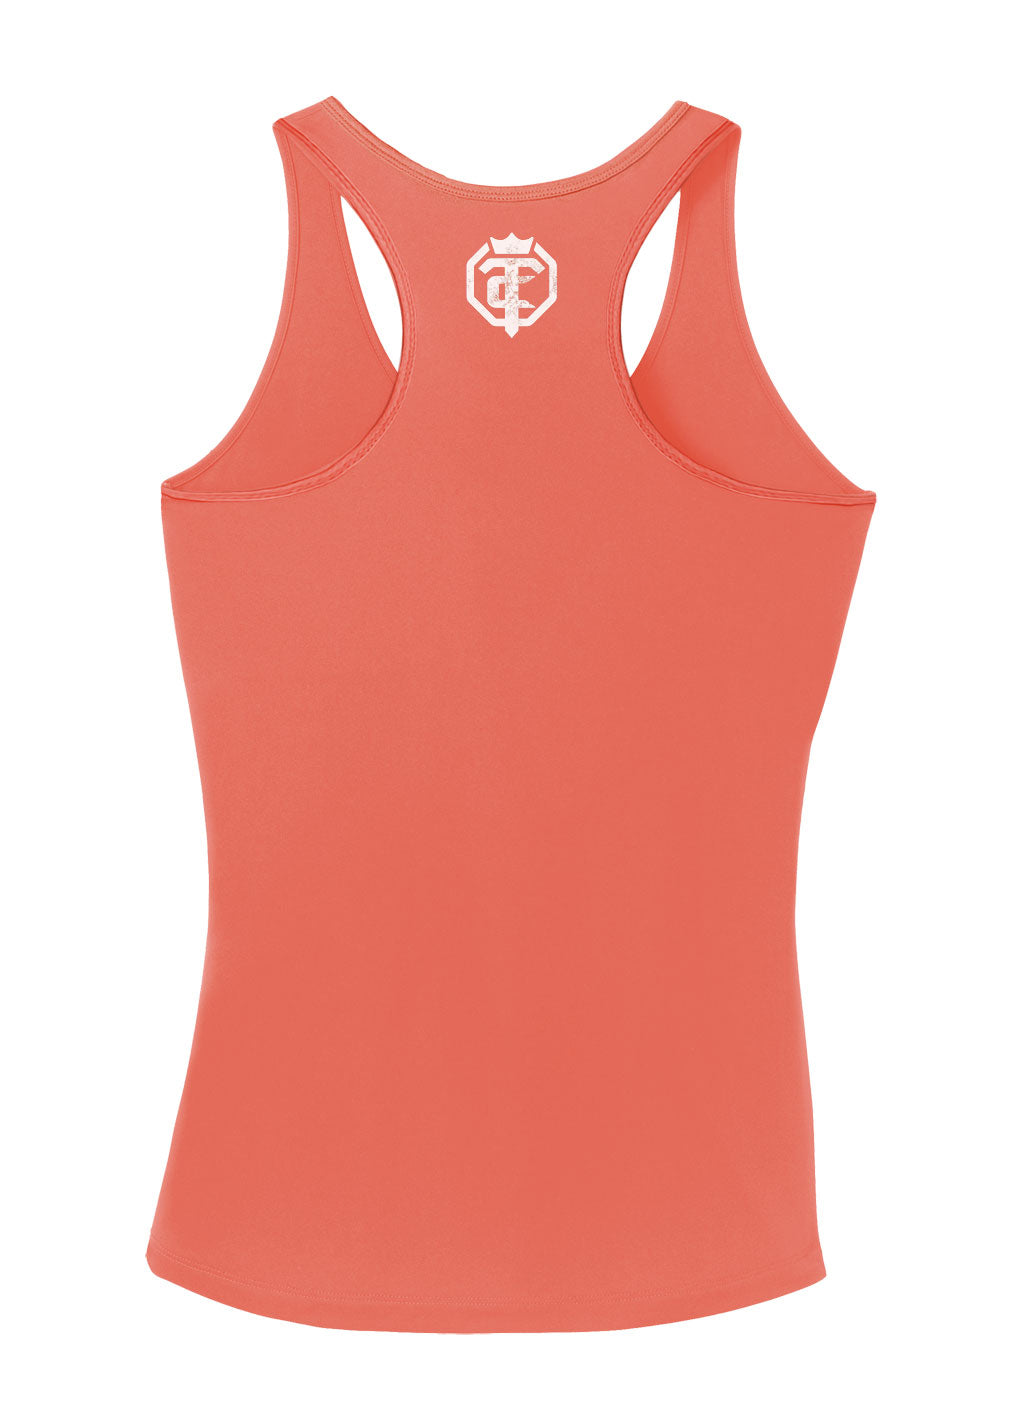 Open The Cage - Soar - Light Orange Women's Racer Back Tank